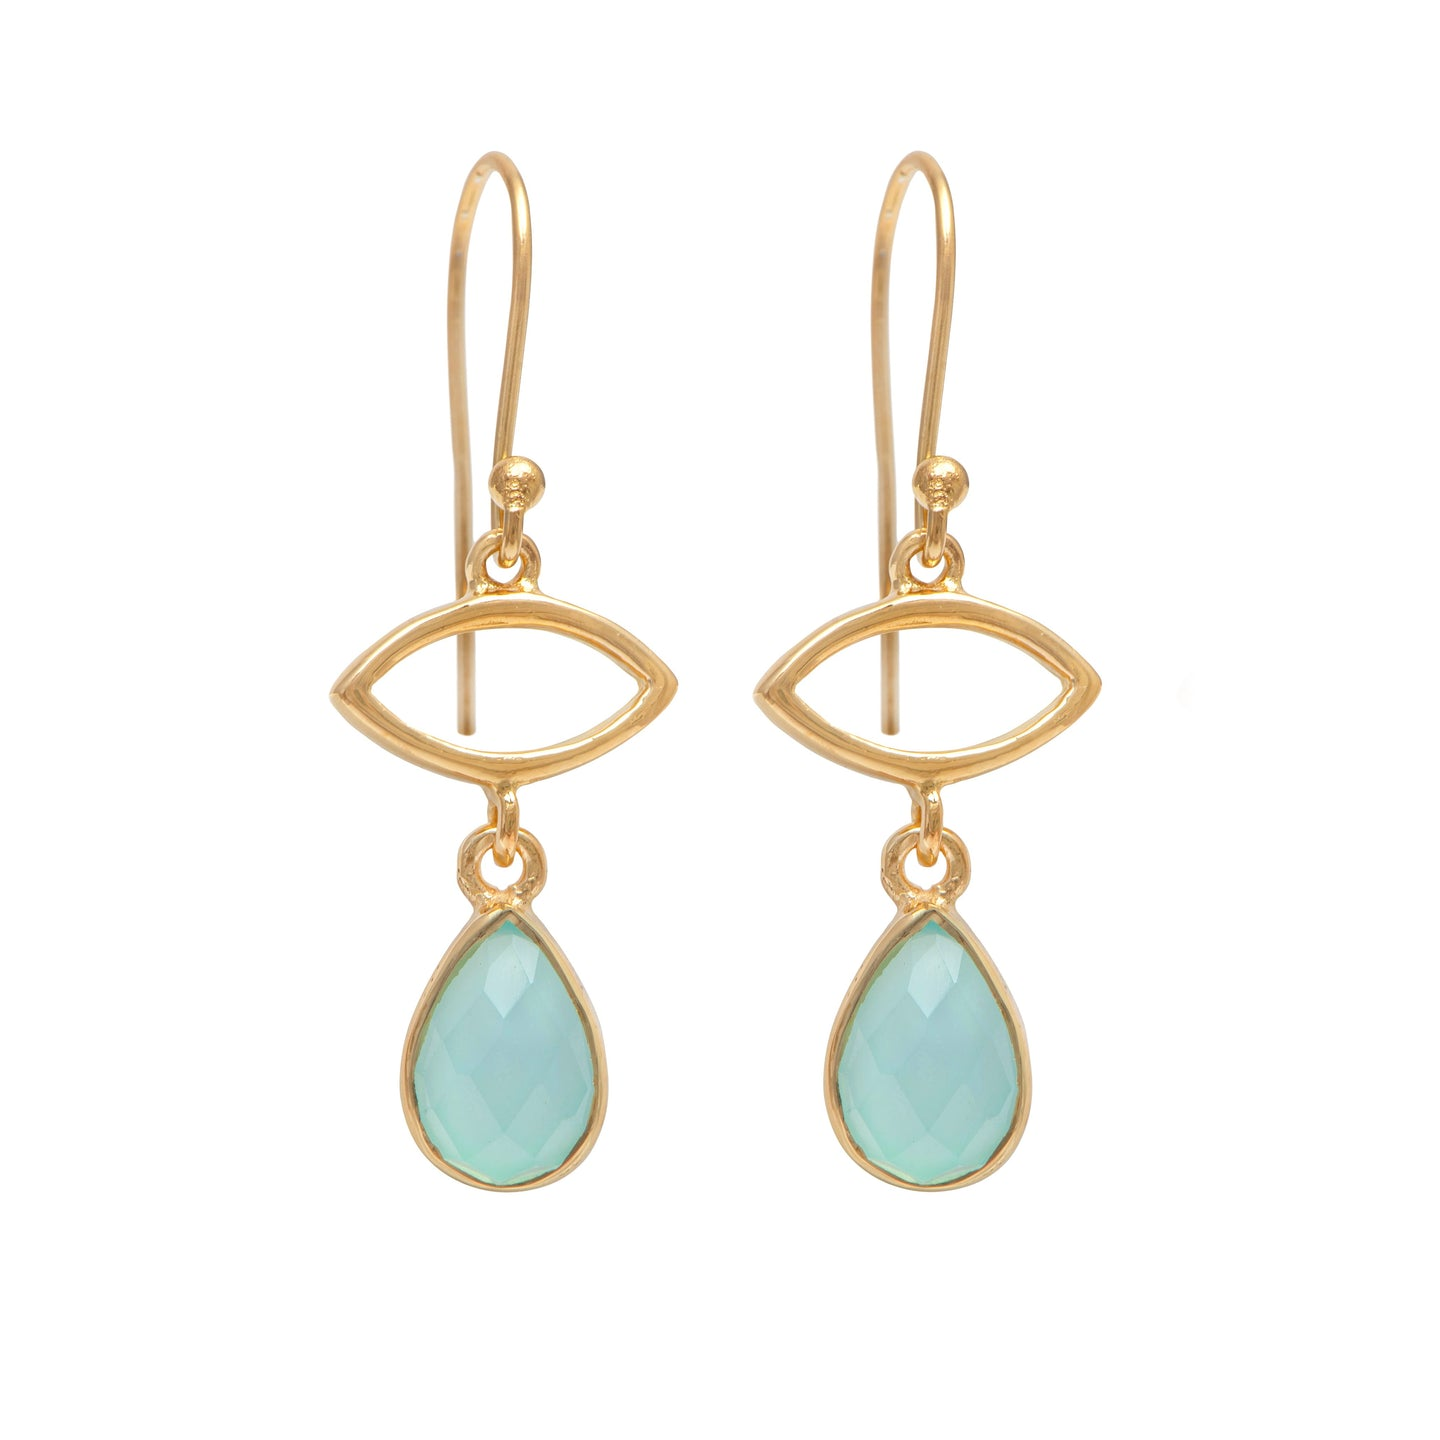 Gold Plated Drop Earrings with Aqua Chalcedony Gemstone